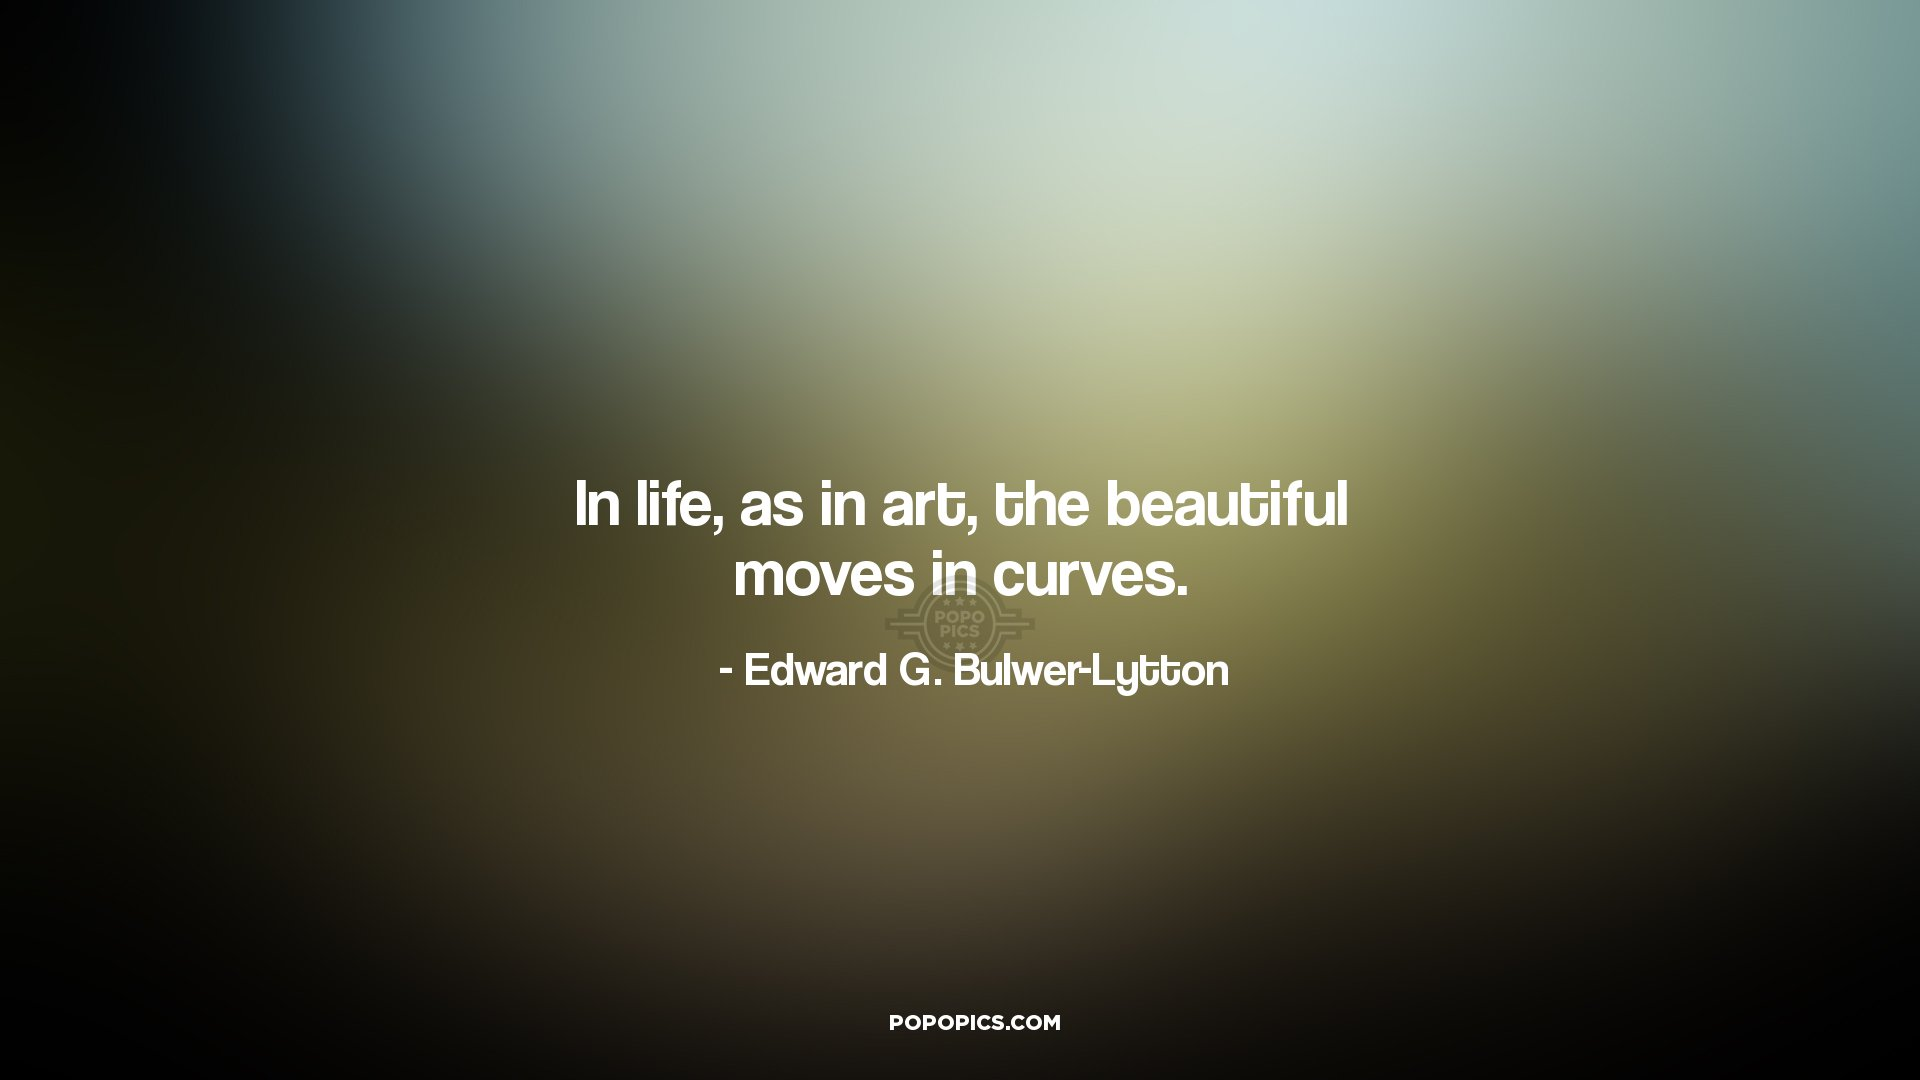 Life Moves On Quotes In Life As In Art The Beautiful Moves In Curves Quotes.